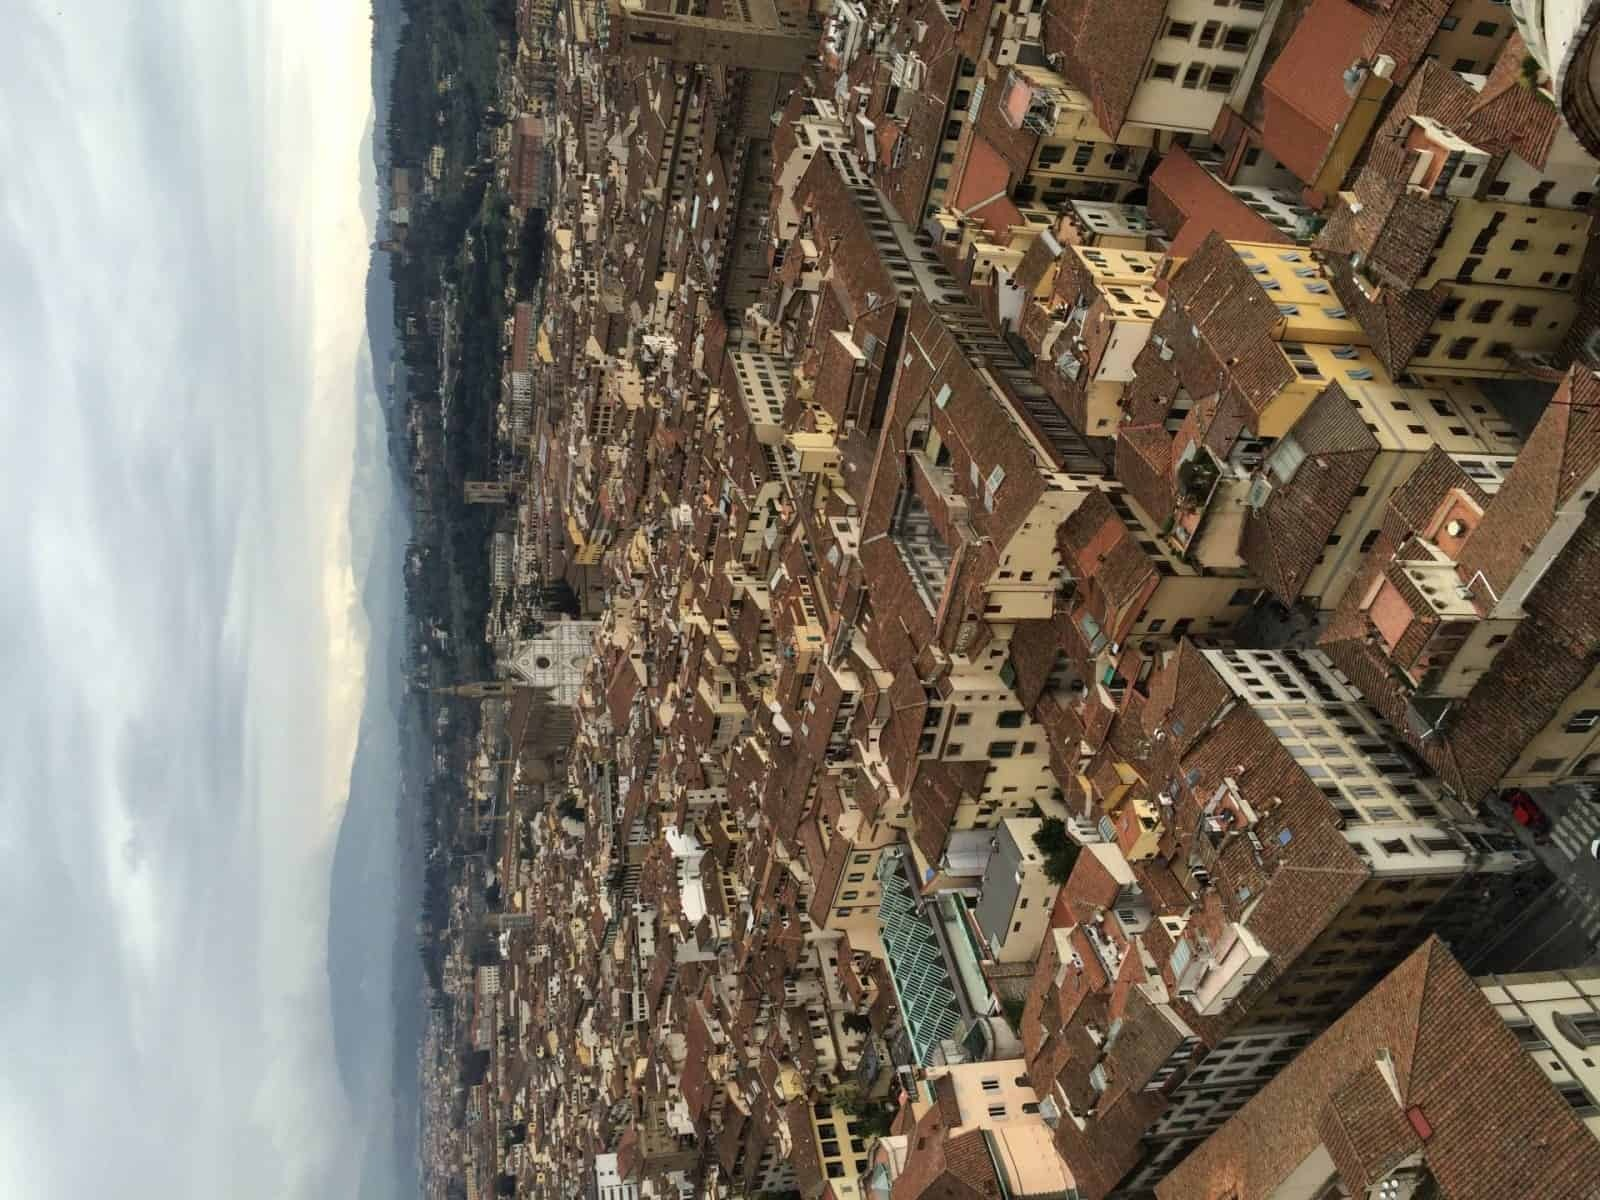 Florence has my heart